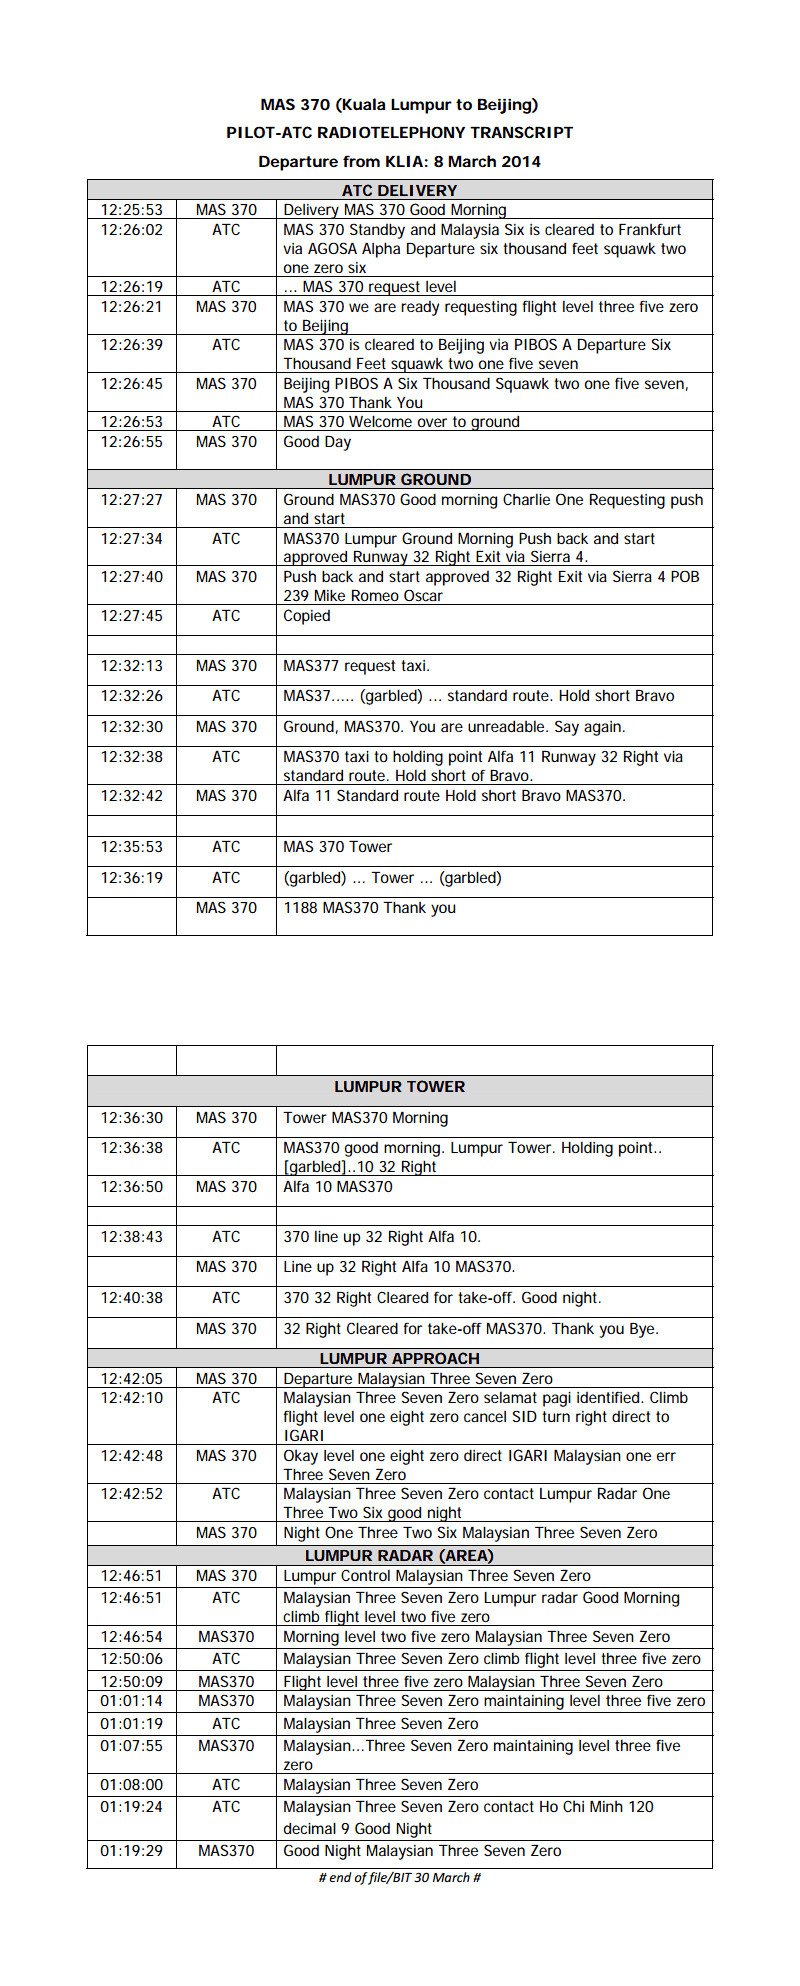 Malaysia finally releases full transcript of exchange between cockpit of MH370 and control tower